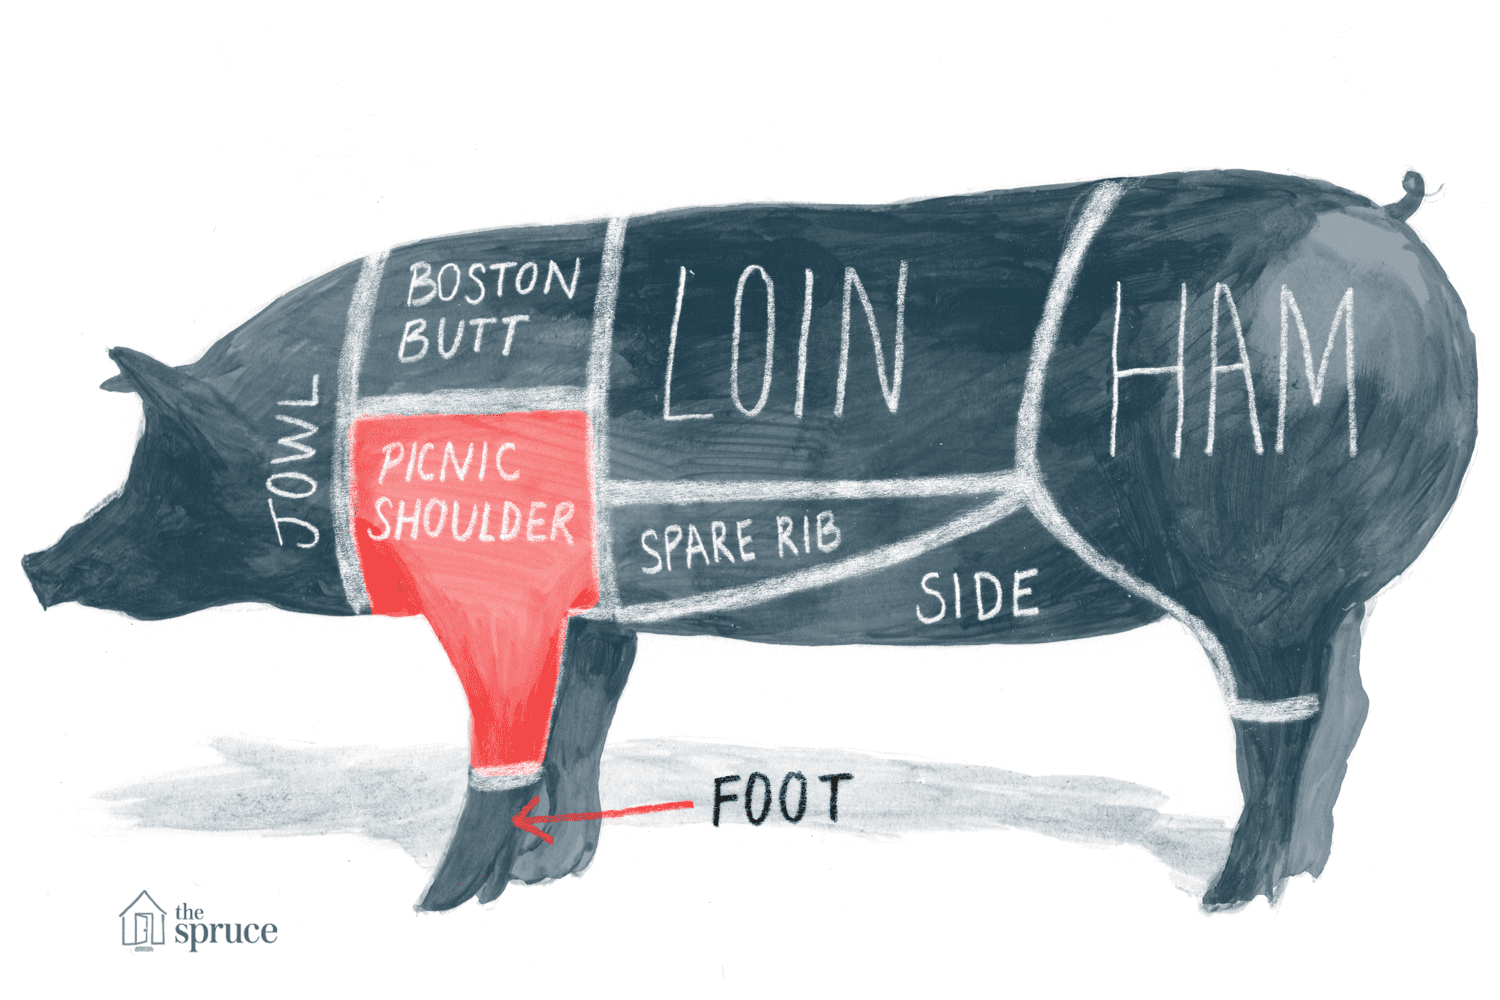 Illustrated diagram of the cuts of pork - highlighting the pork/picnic shoulder